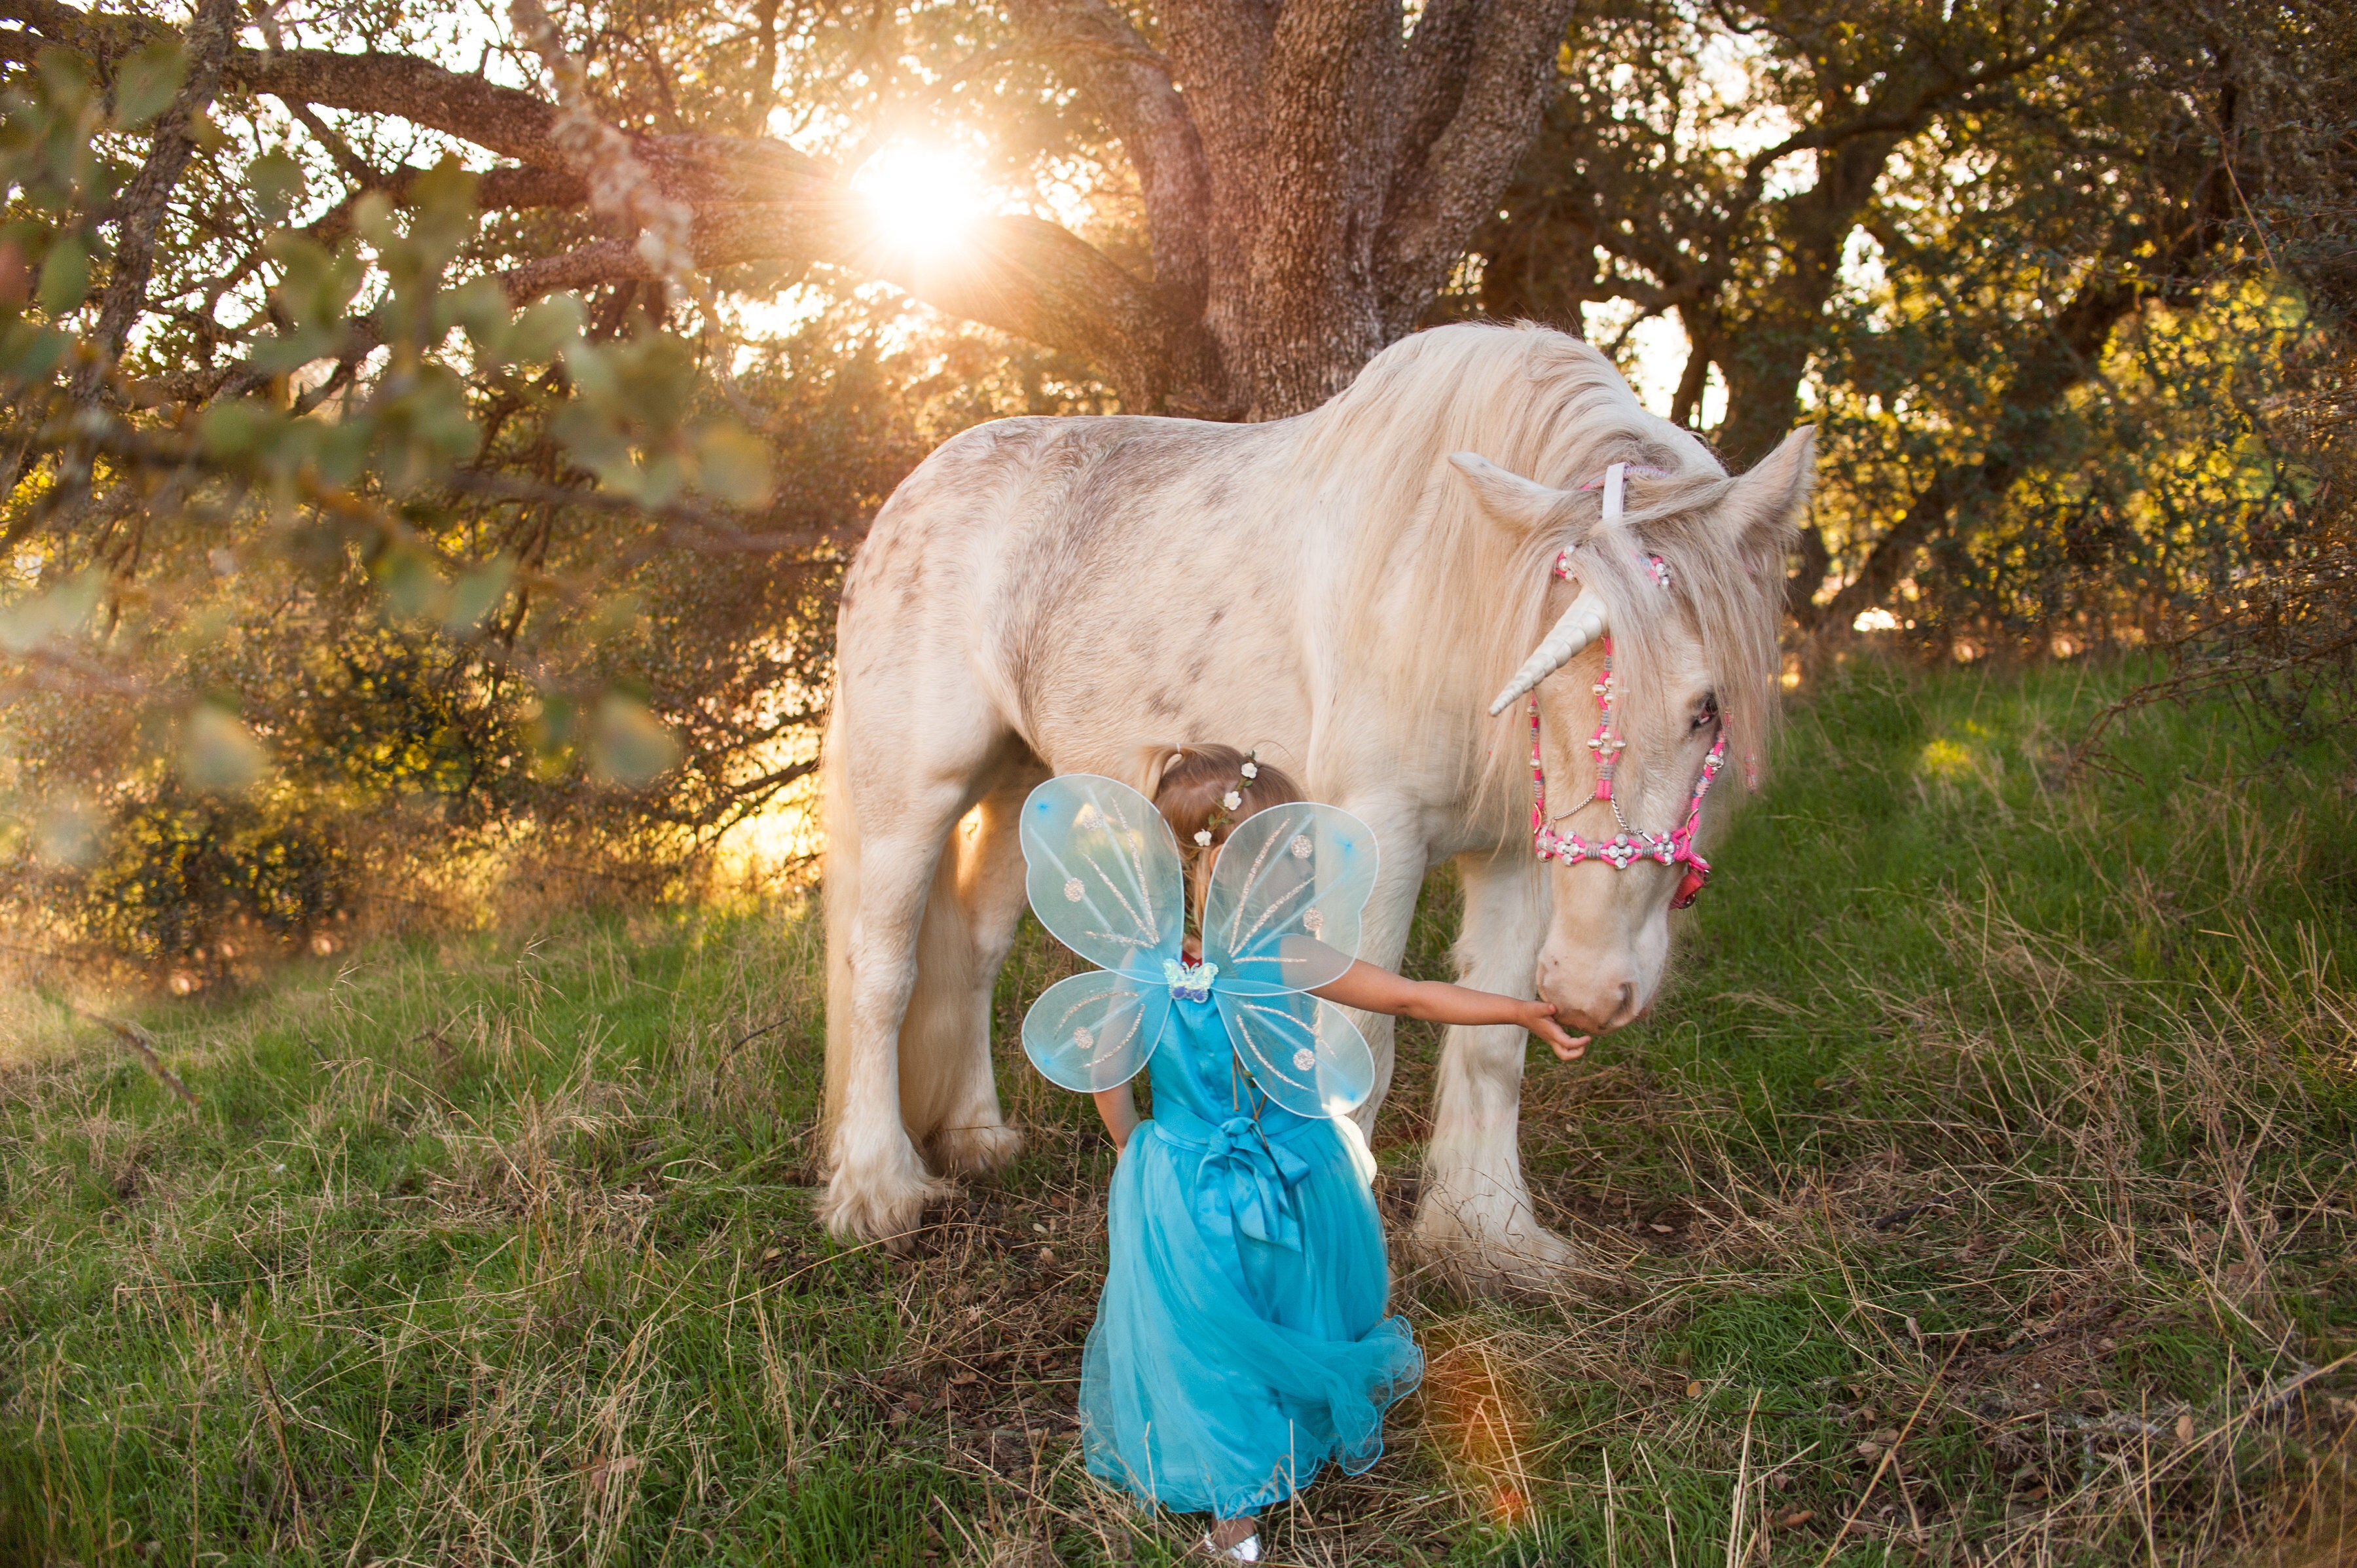 Fairy princess reaches out to a magical unicorn under the sunset in Creston, California.